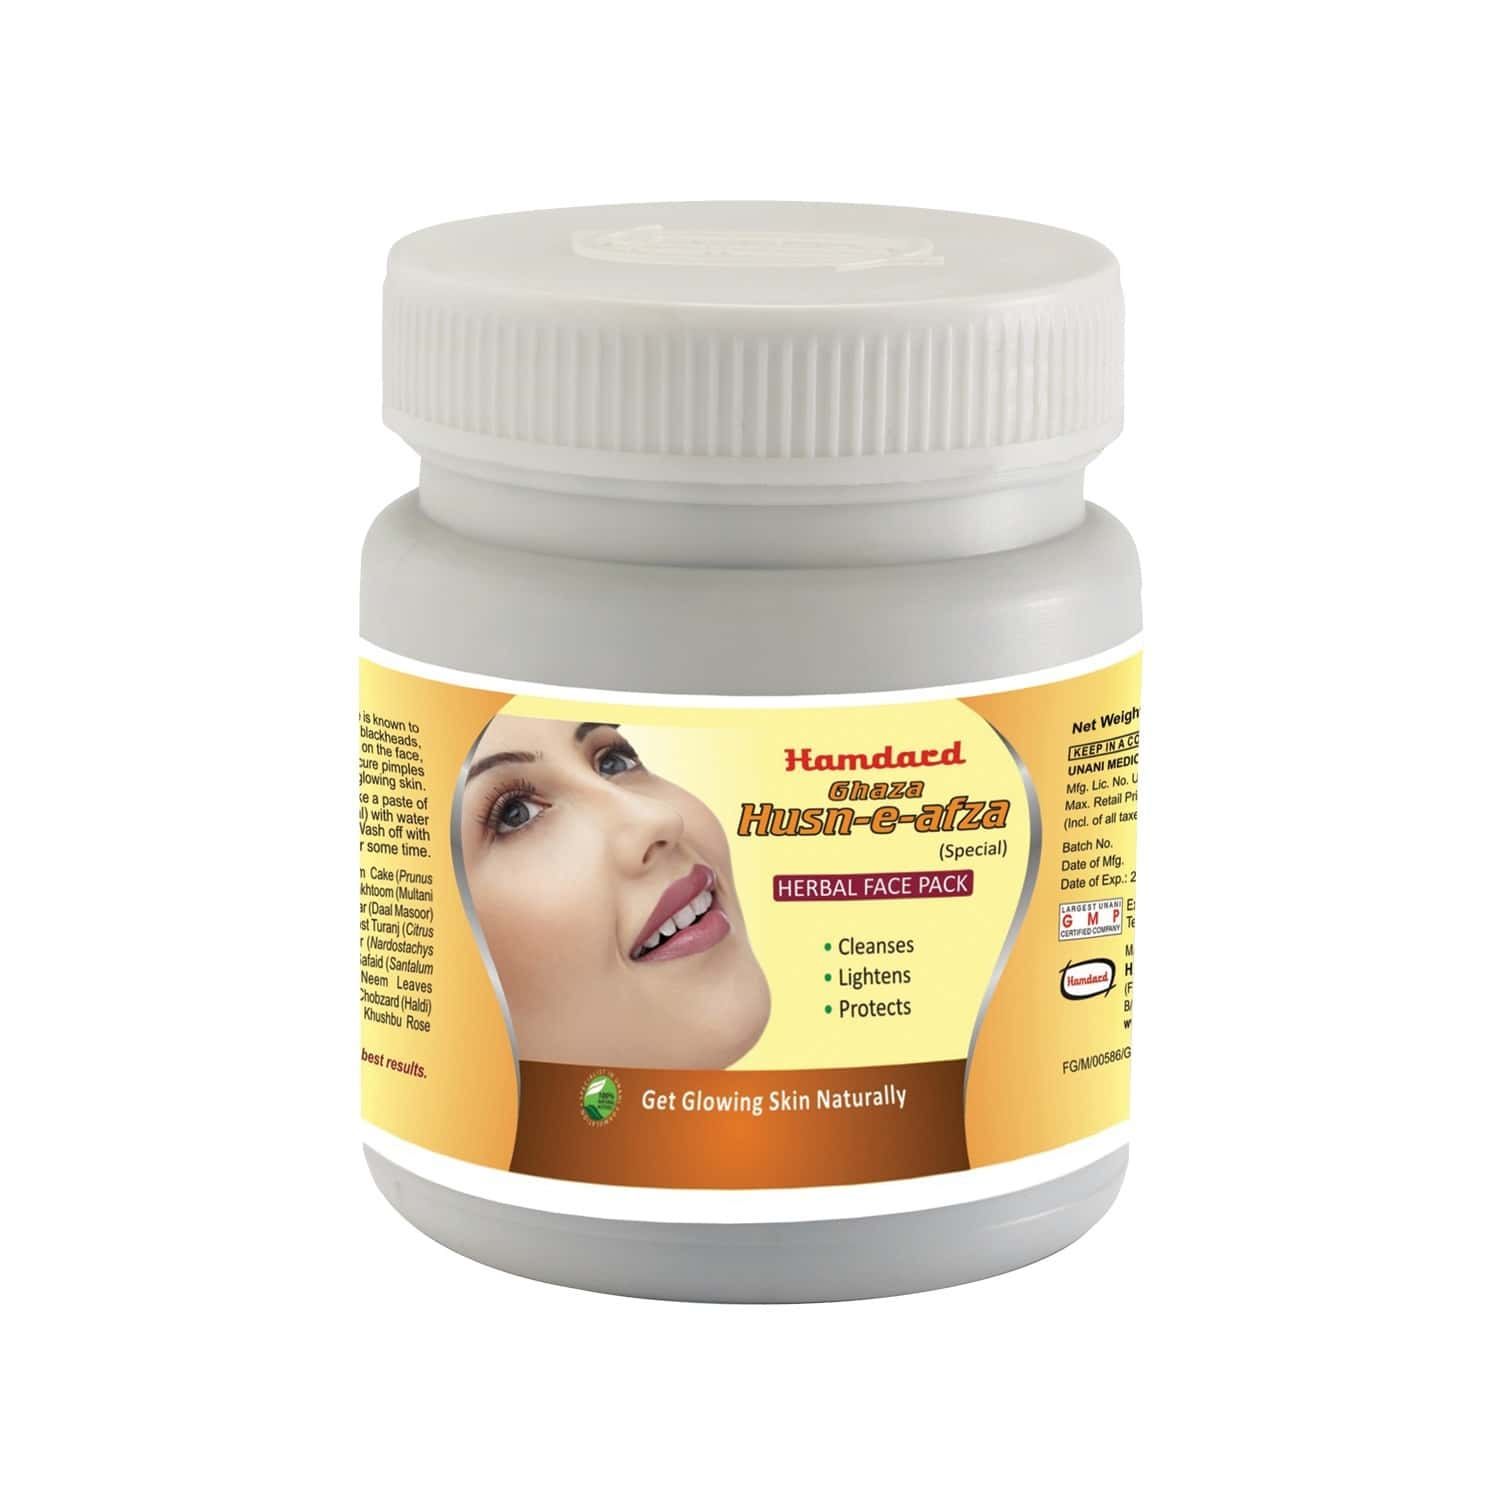 Hamdard Ghaza Husn-e-afza (special) Herbal Face Pack - 100g